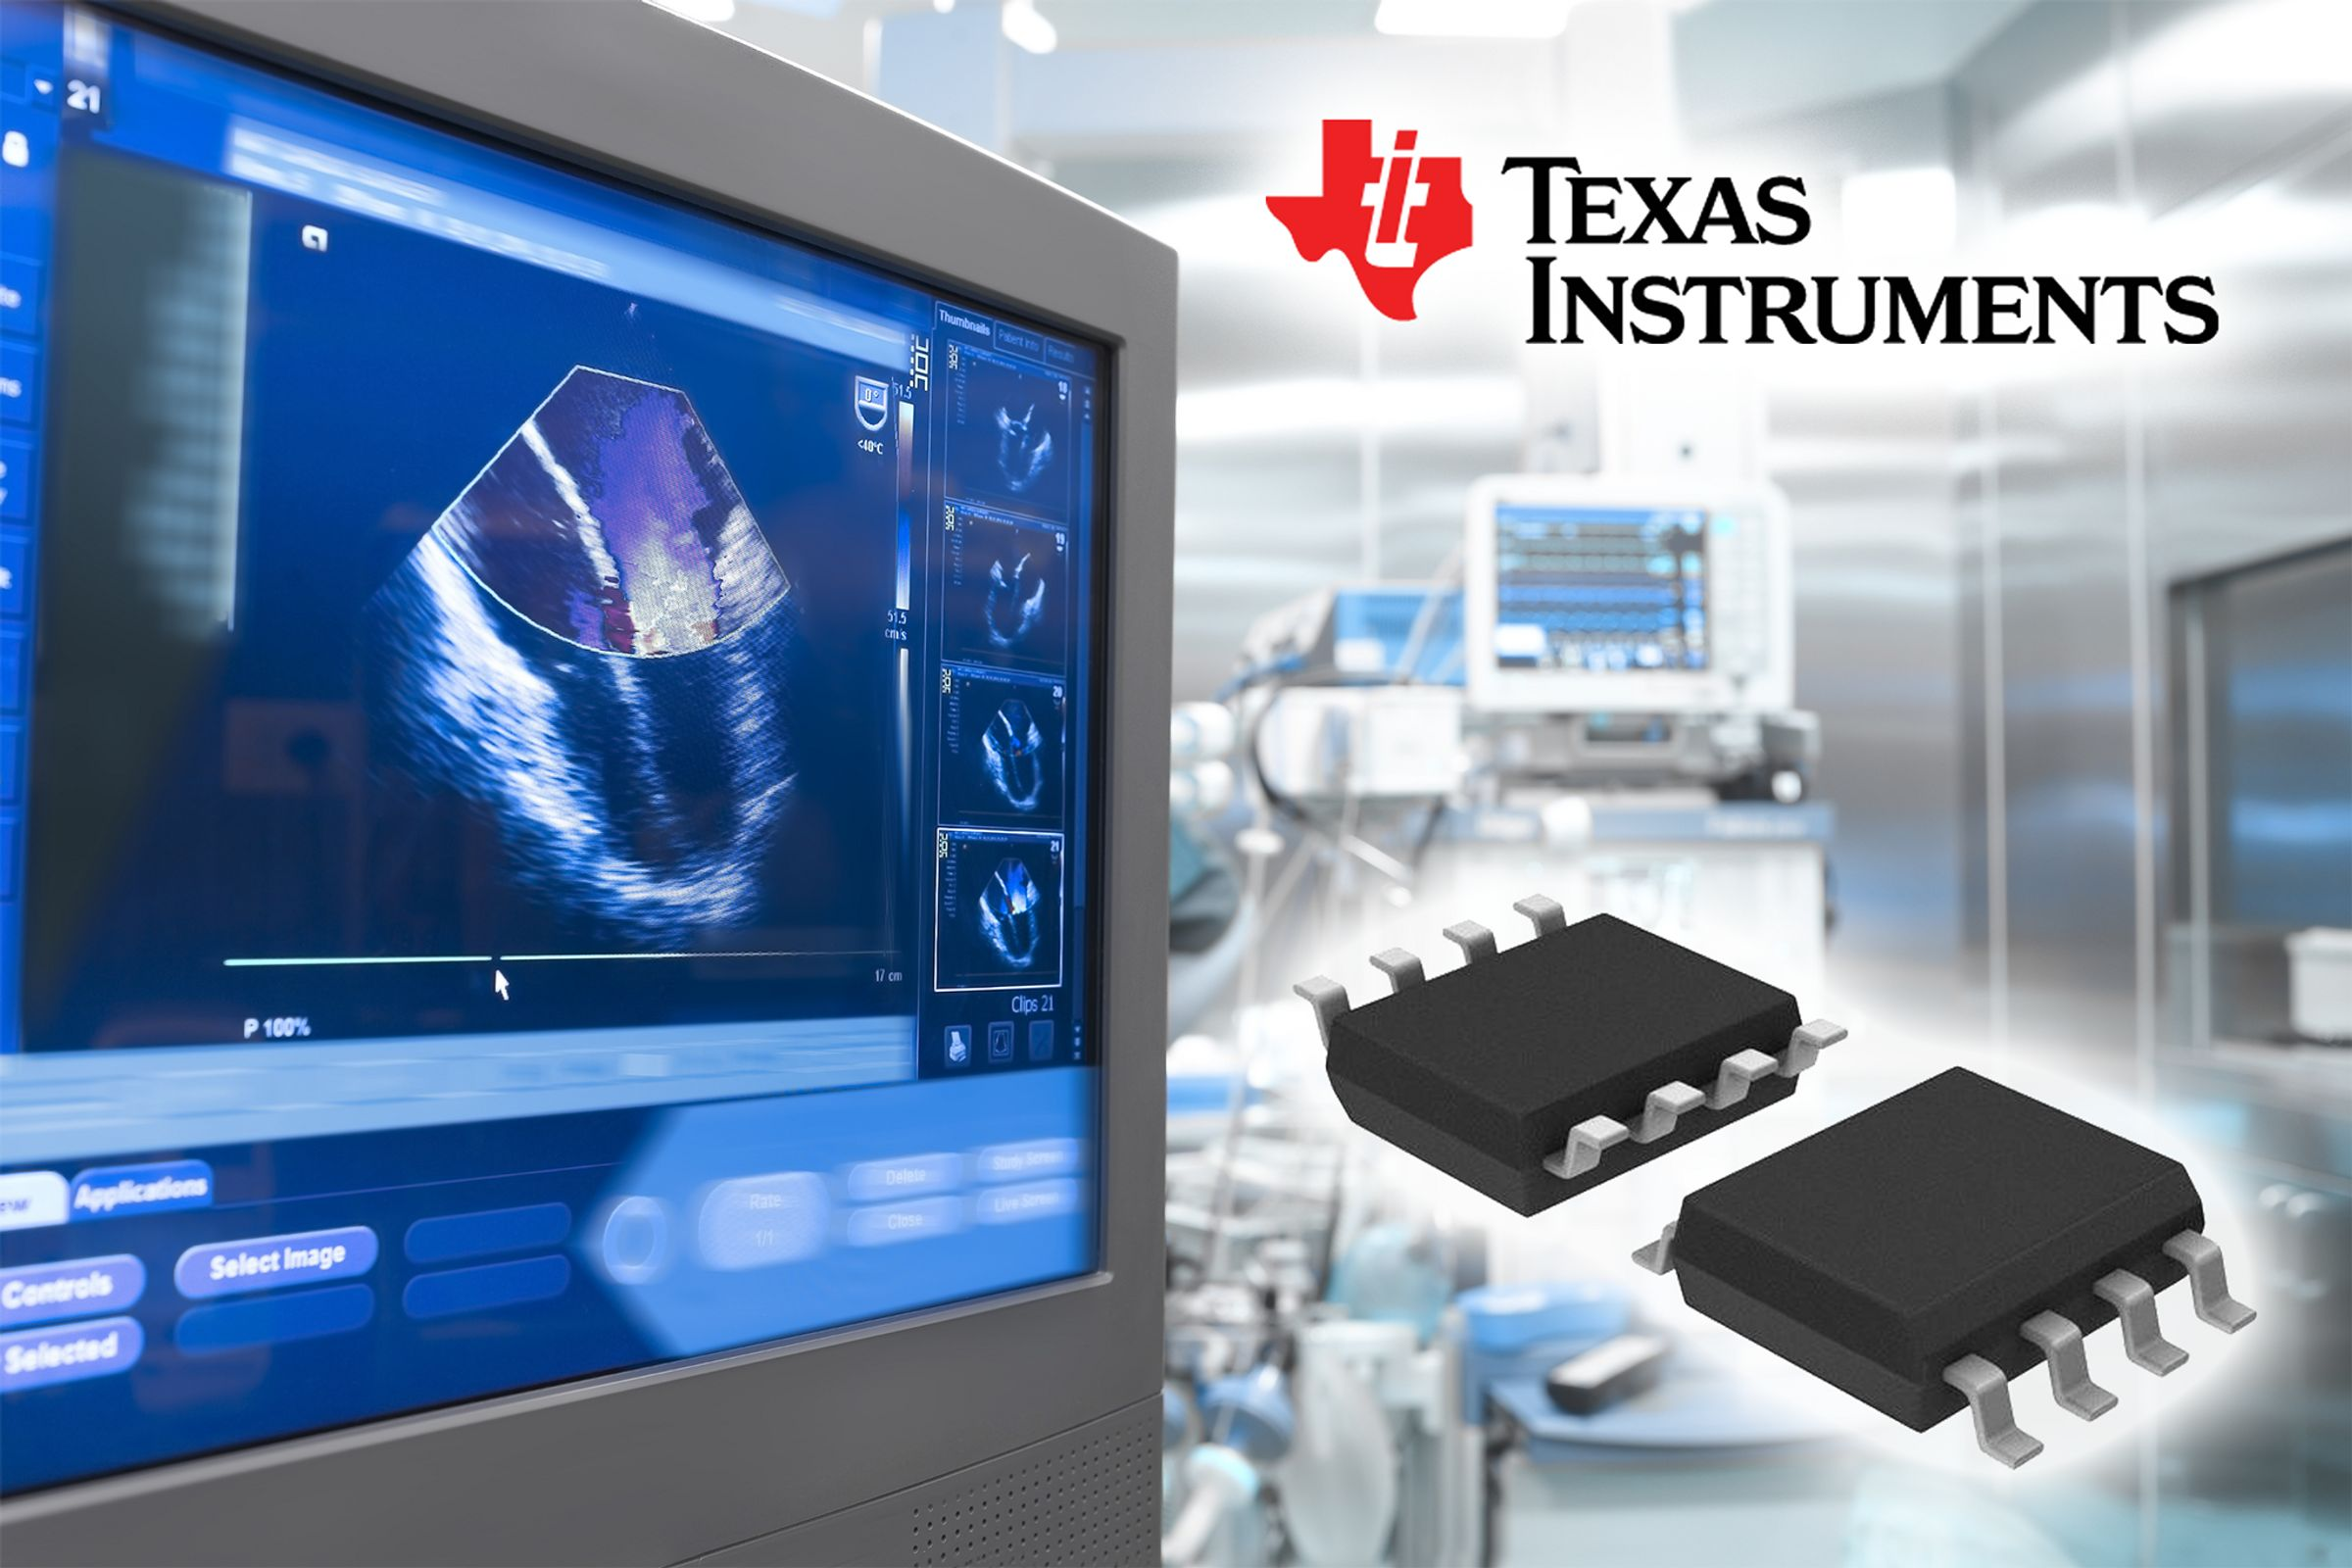 Texas Instruments Operational Amplifiers In Stock and Available for Immediate Shipment